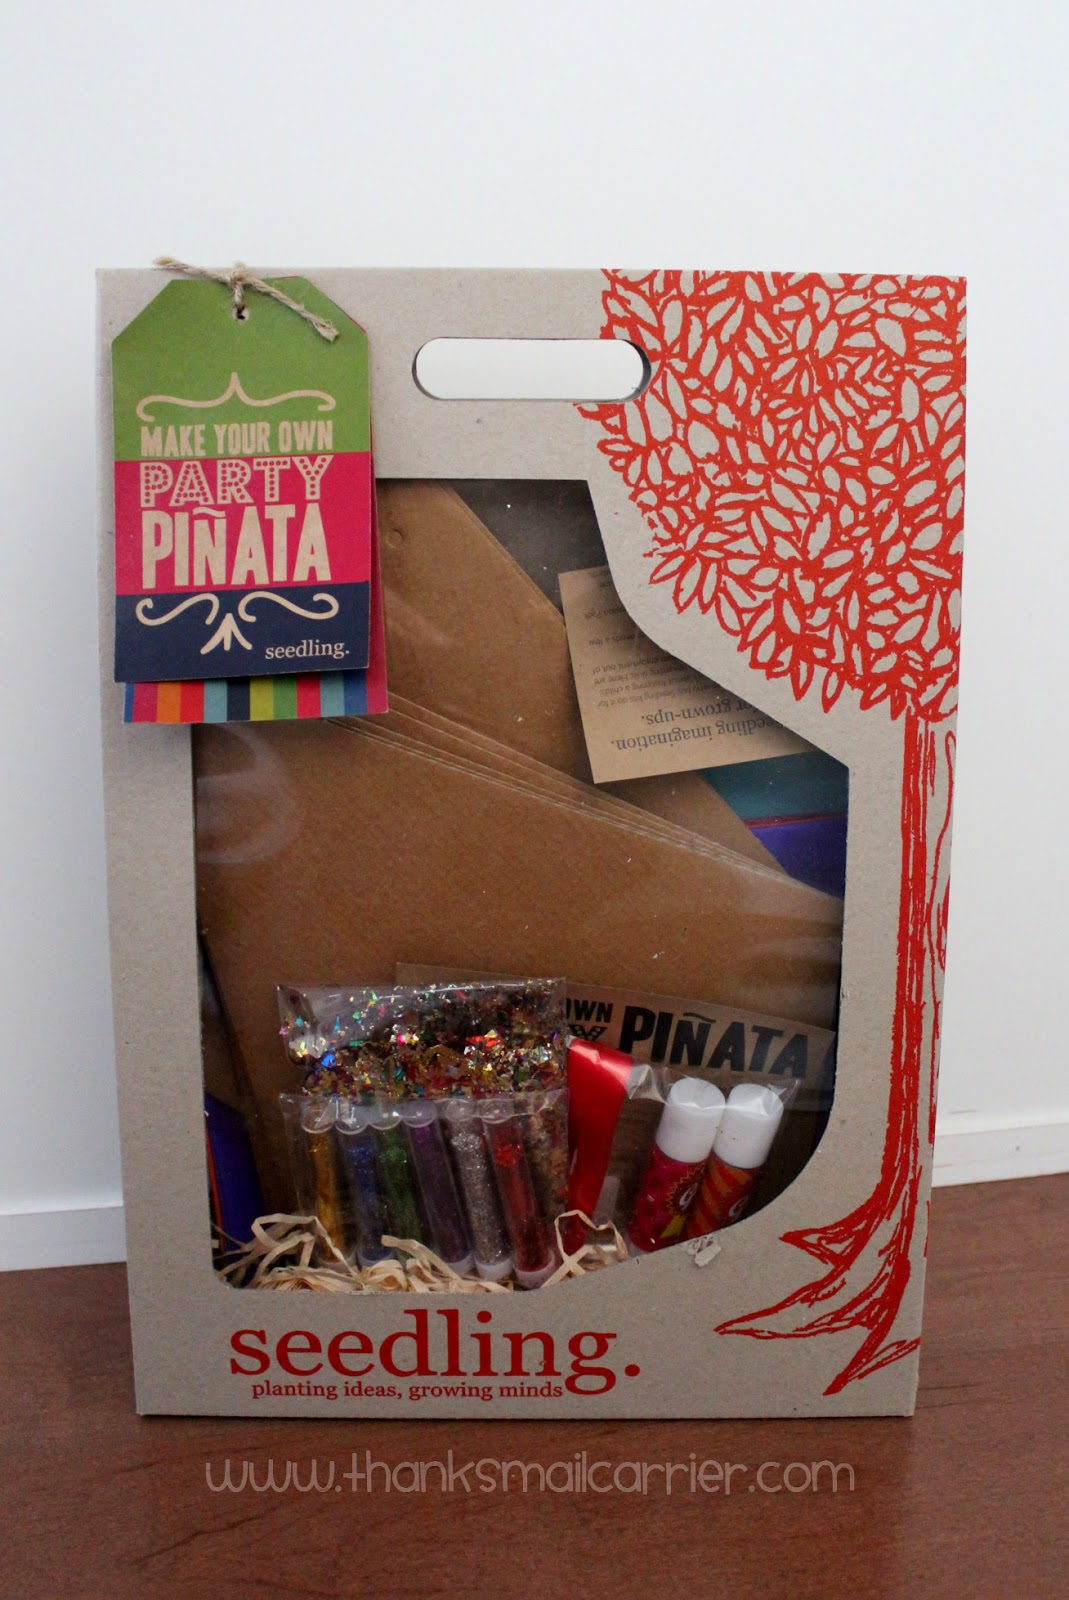 Seedling Make Your Own Pinata Kit